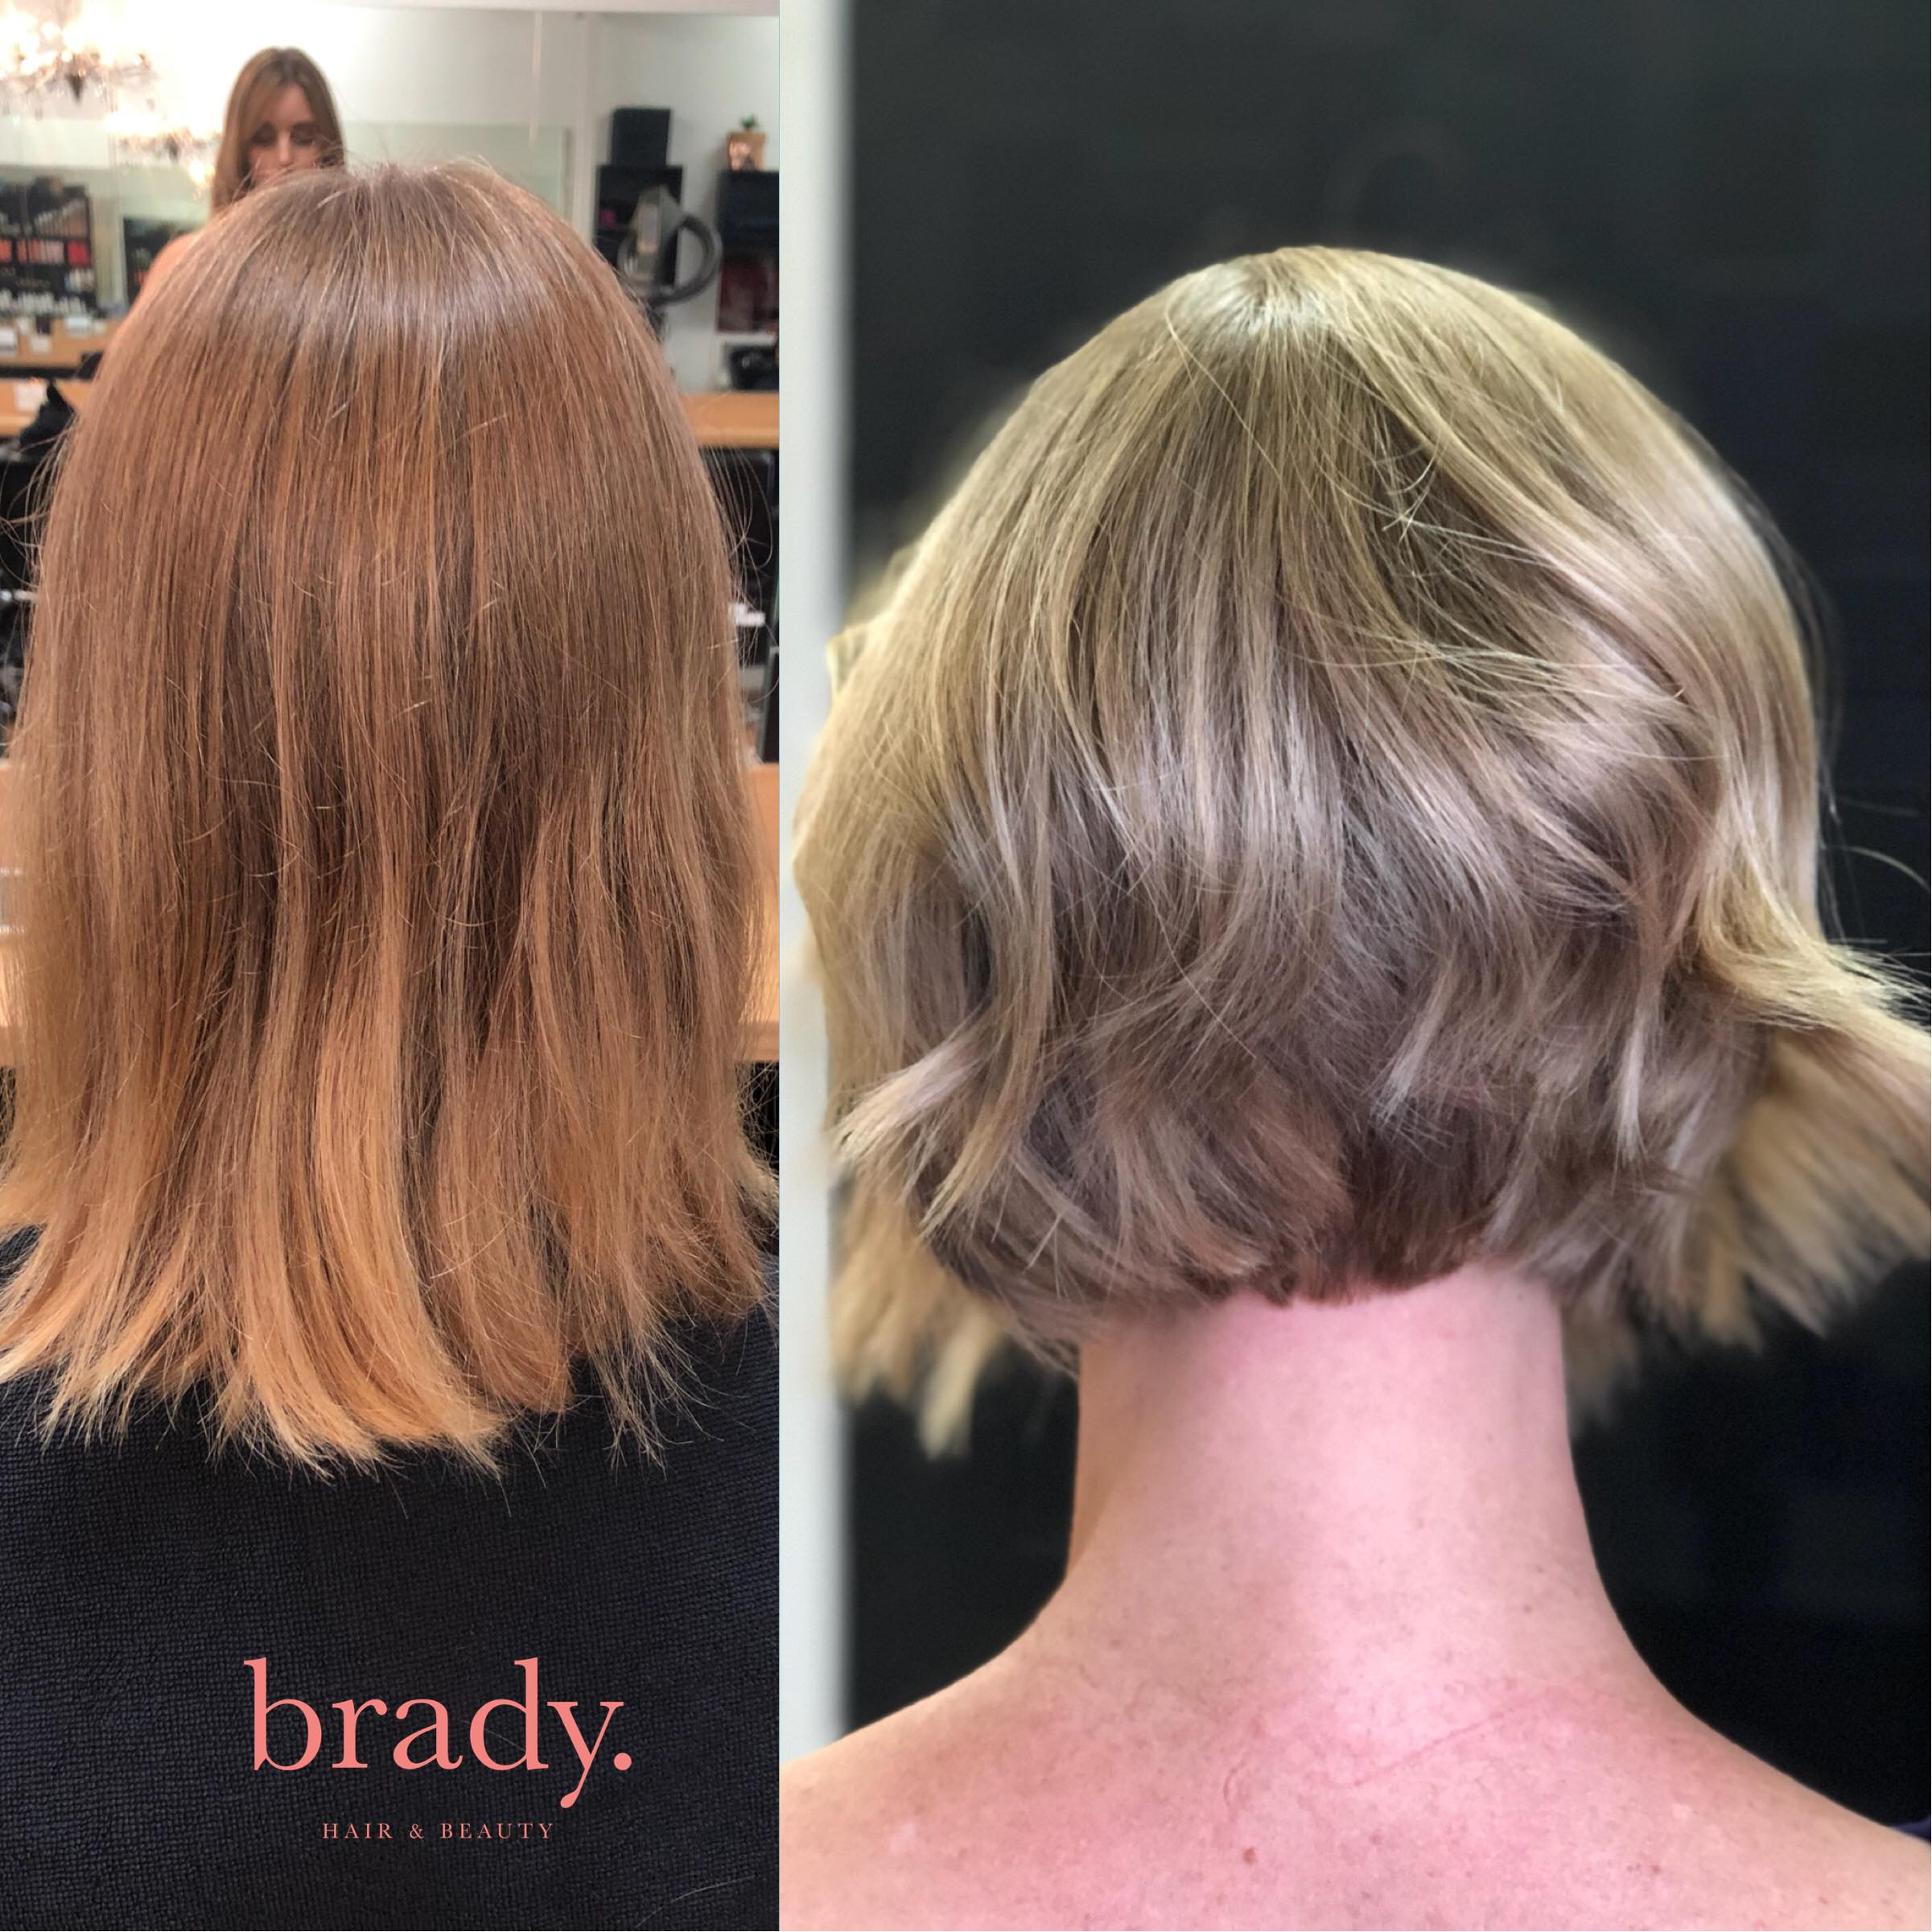 Before and after picture of hairstyle. Final result: woman with short, feminine haircut. Styled by Brady. Hair & Beauty, Toowong, Brisbane.